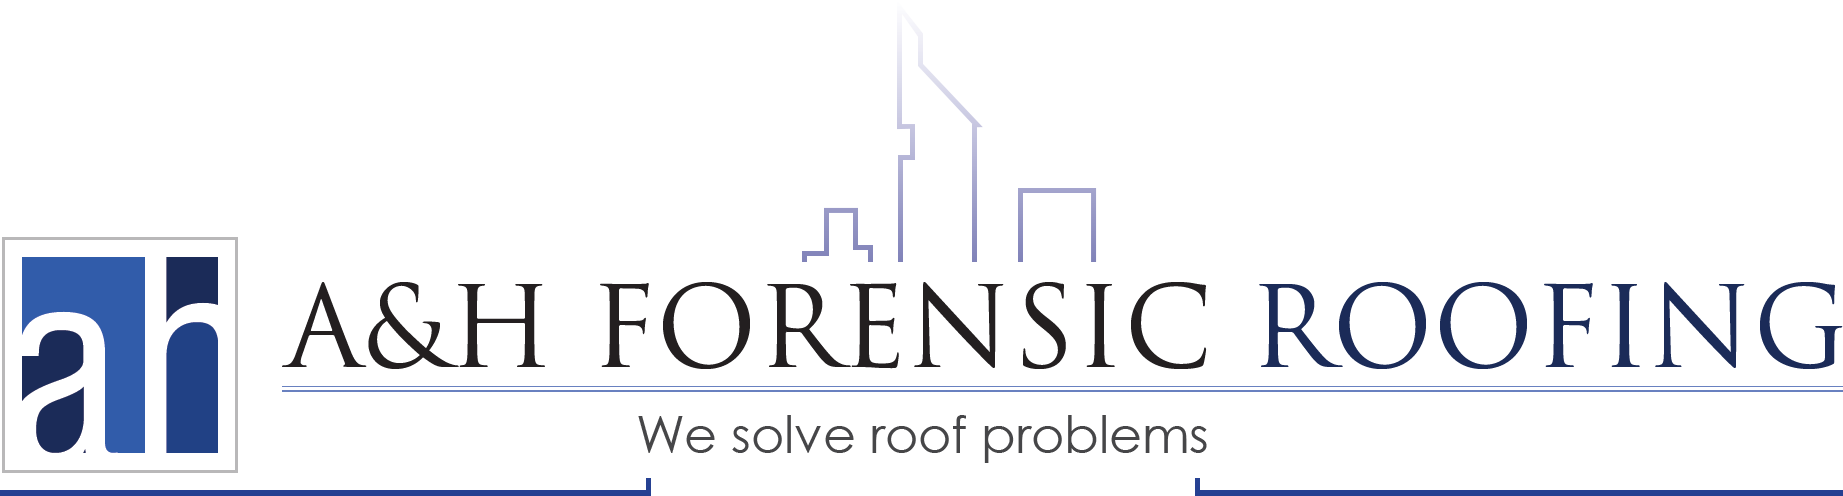 A&H Forensic Roofing